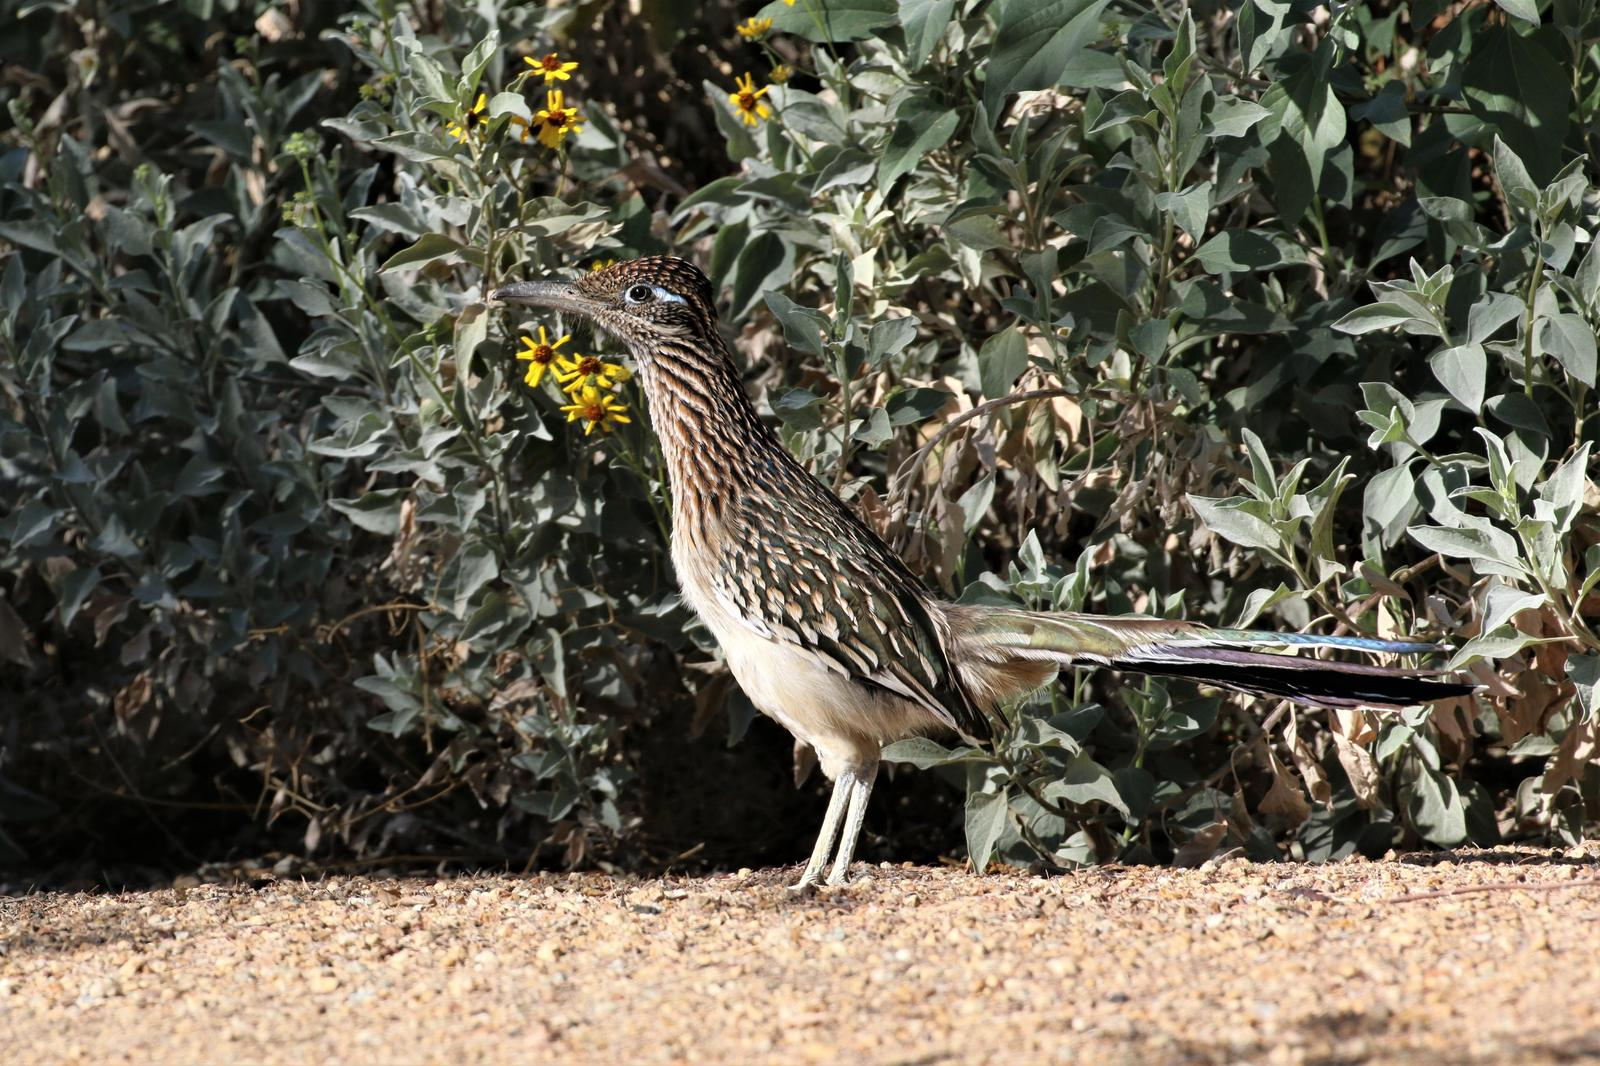 Greater Roadrunner Photo by Richard Jeffers